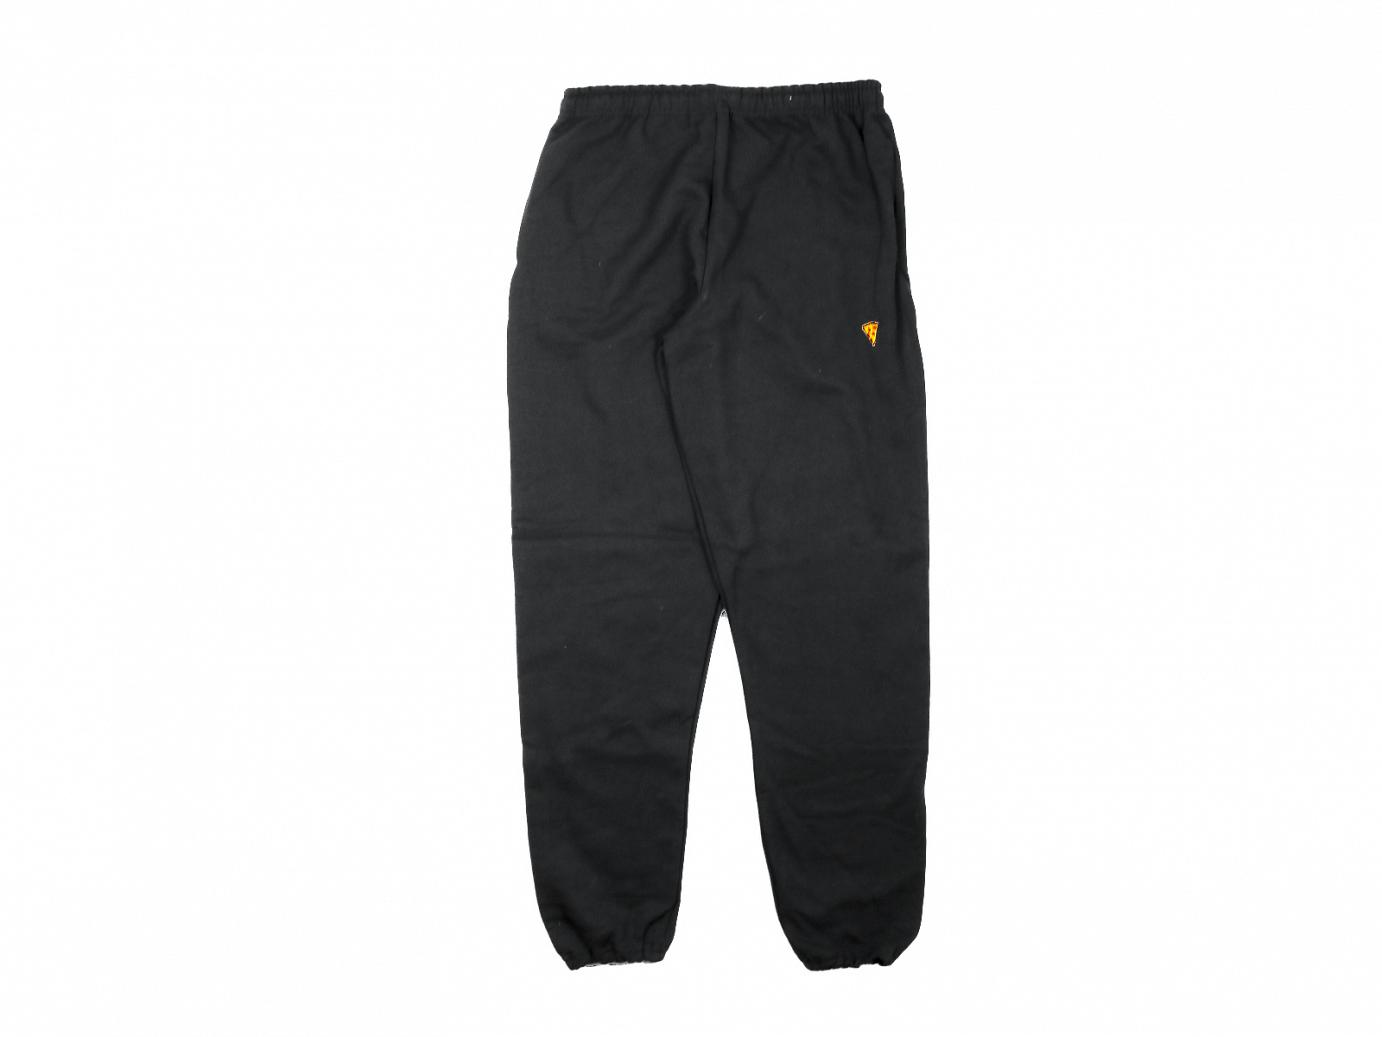 PIZZA SKATEBOARDS EMOJI SWEAT PANT